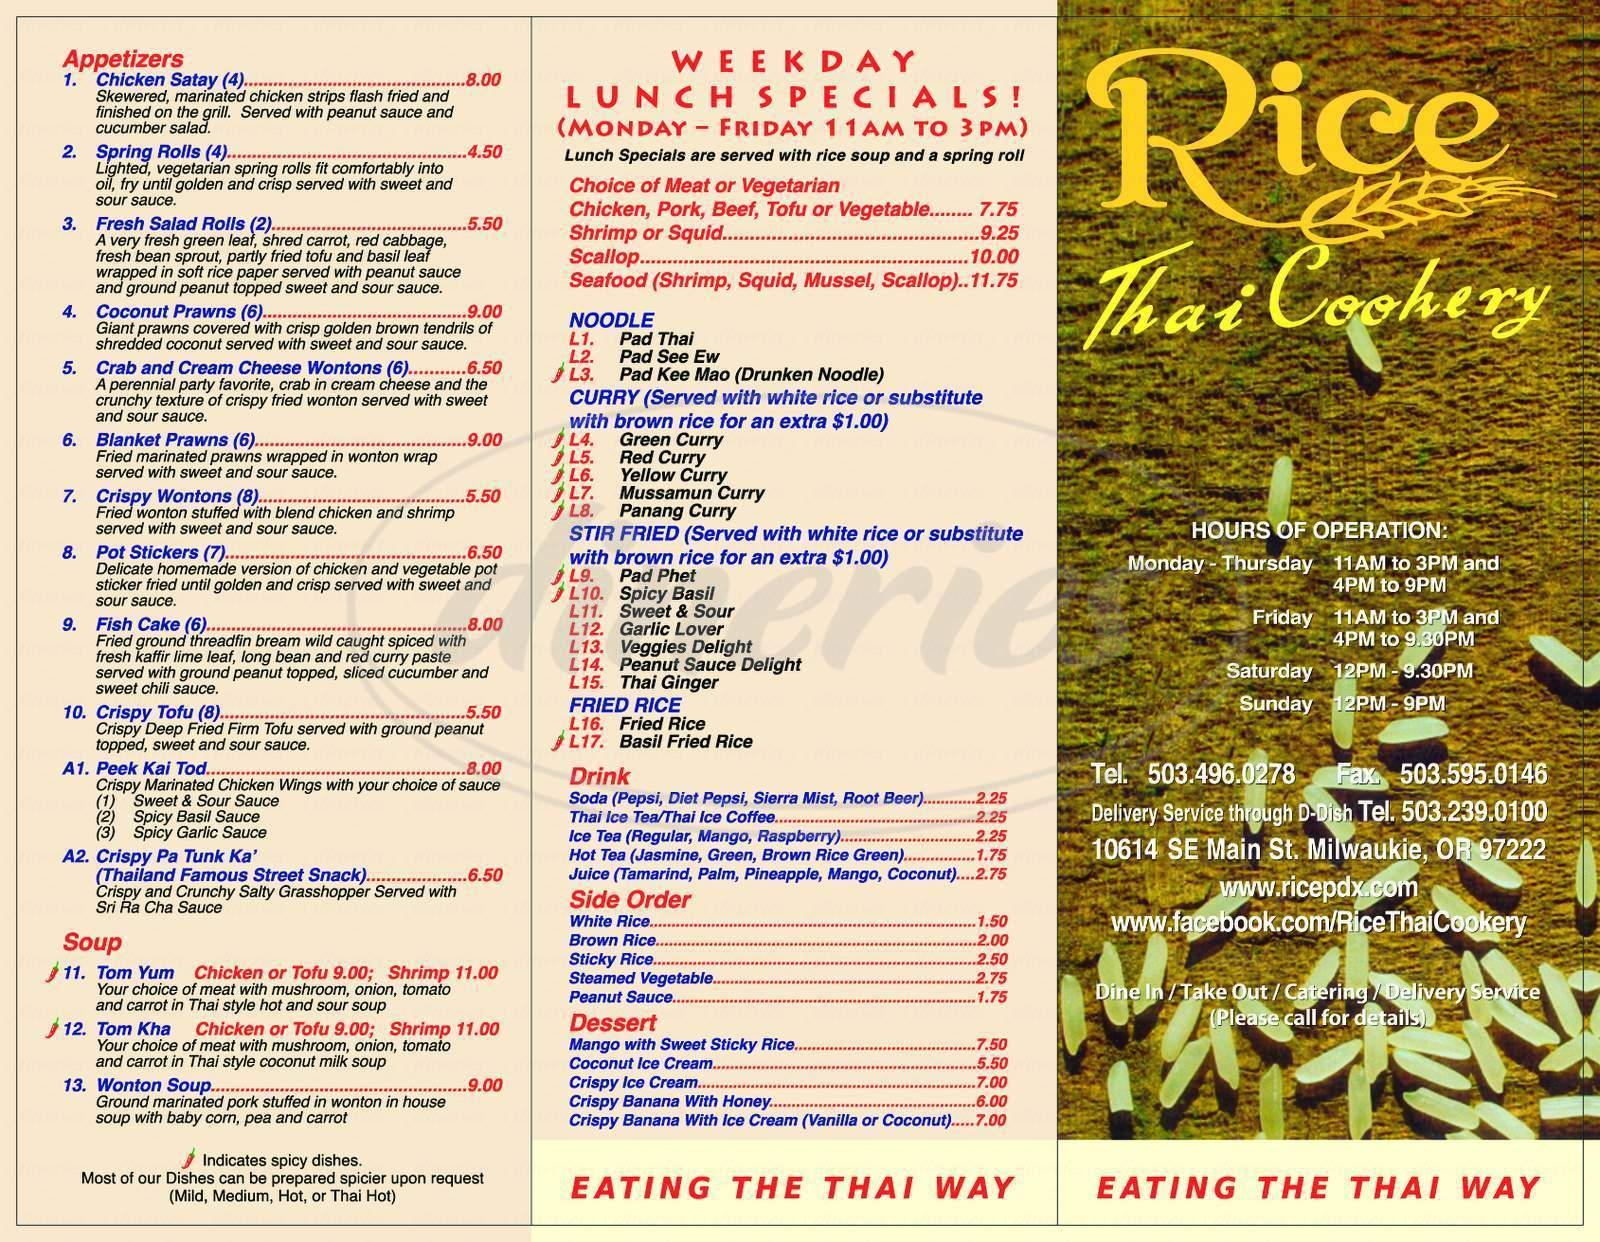 menu for Rice Thai Cookery